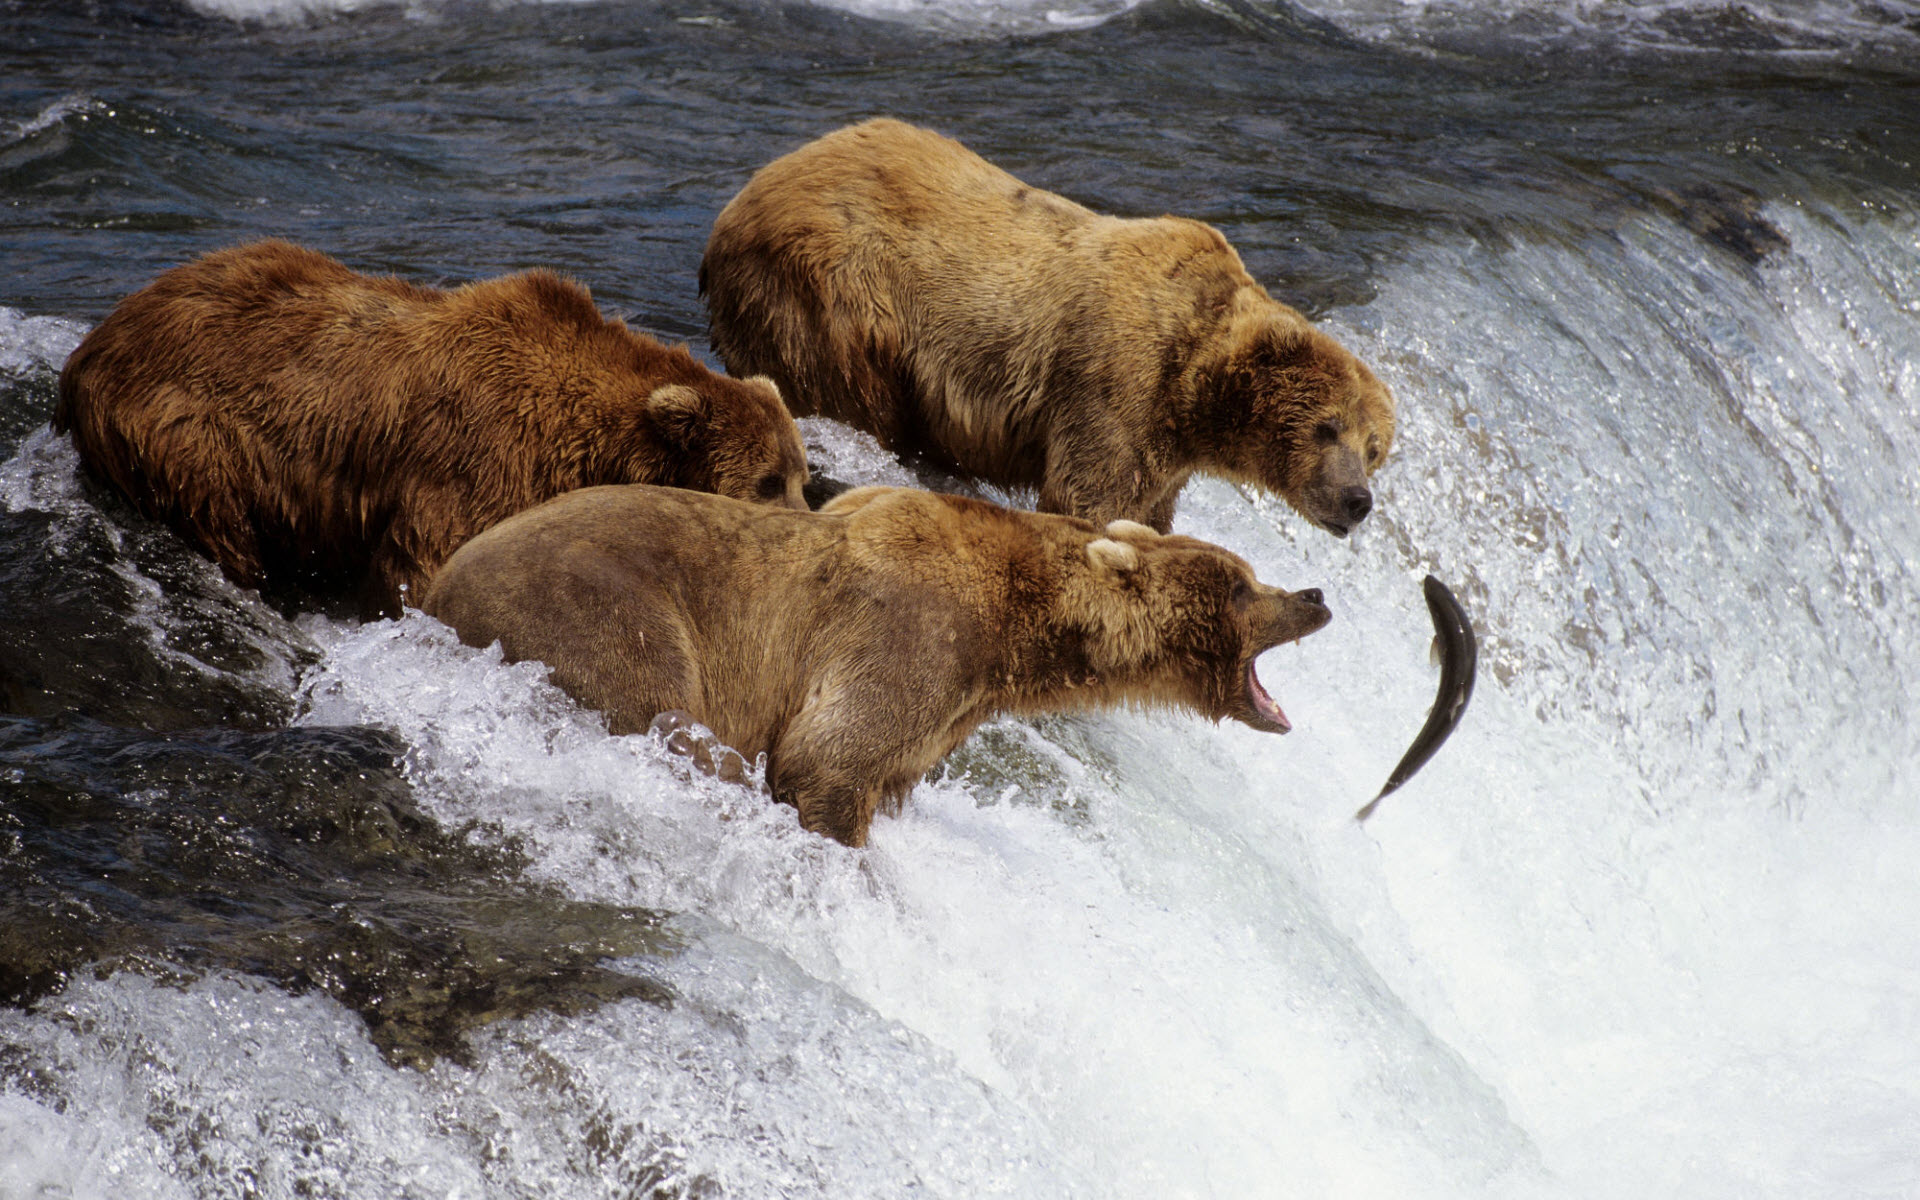 Brown Bears Alaska 258.58 Kb